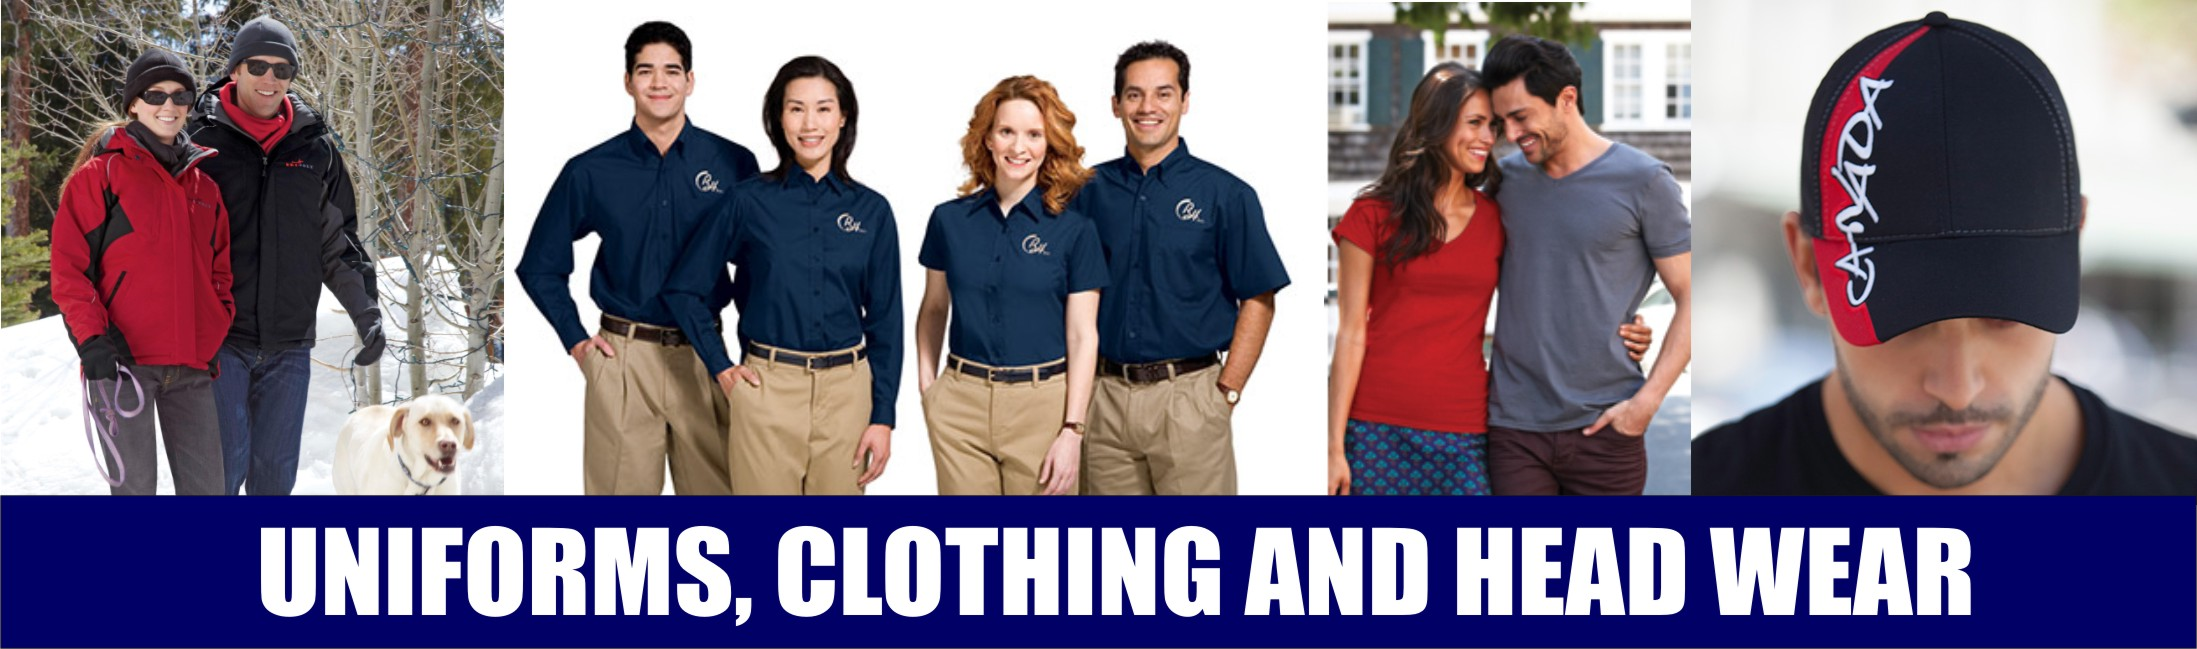 uniforms-clothing-and-headwear